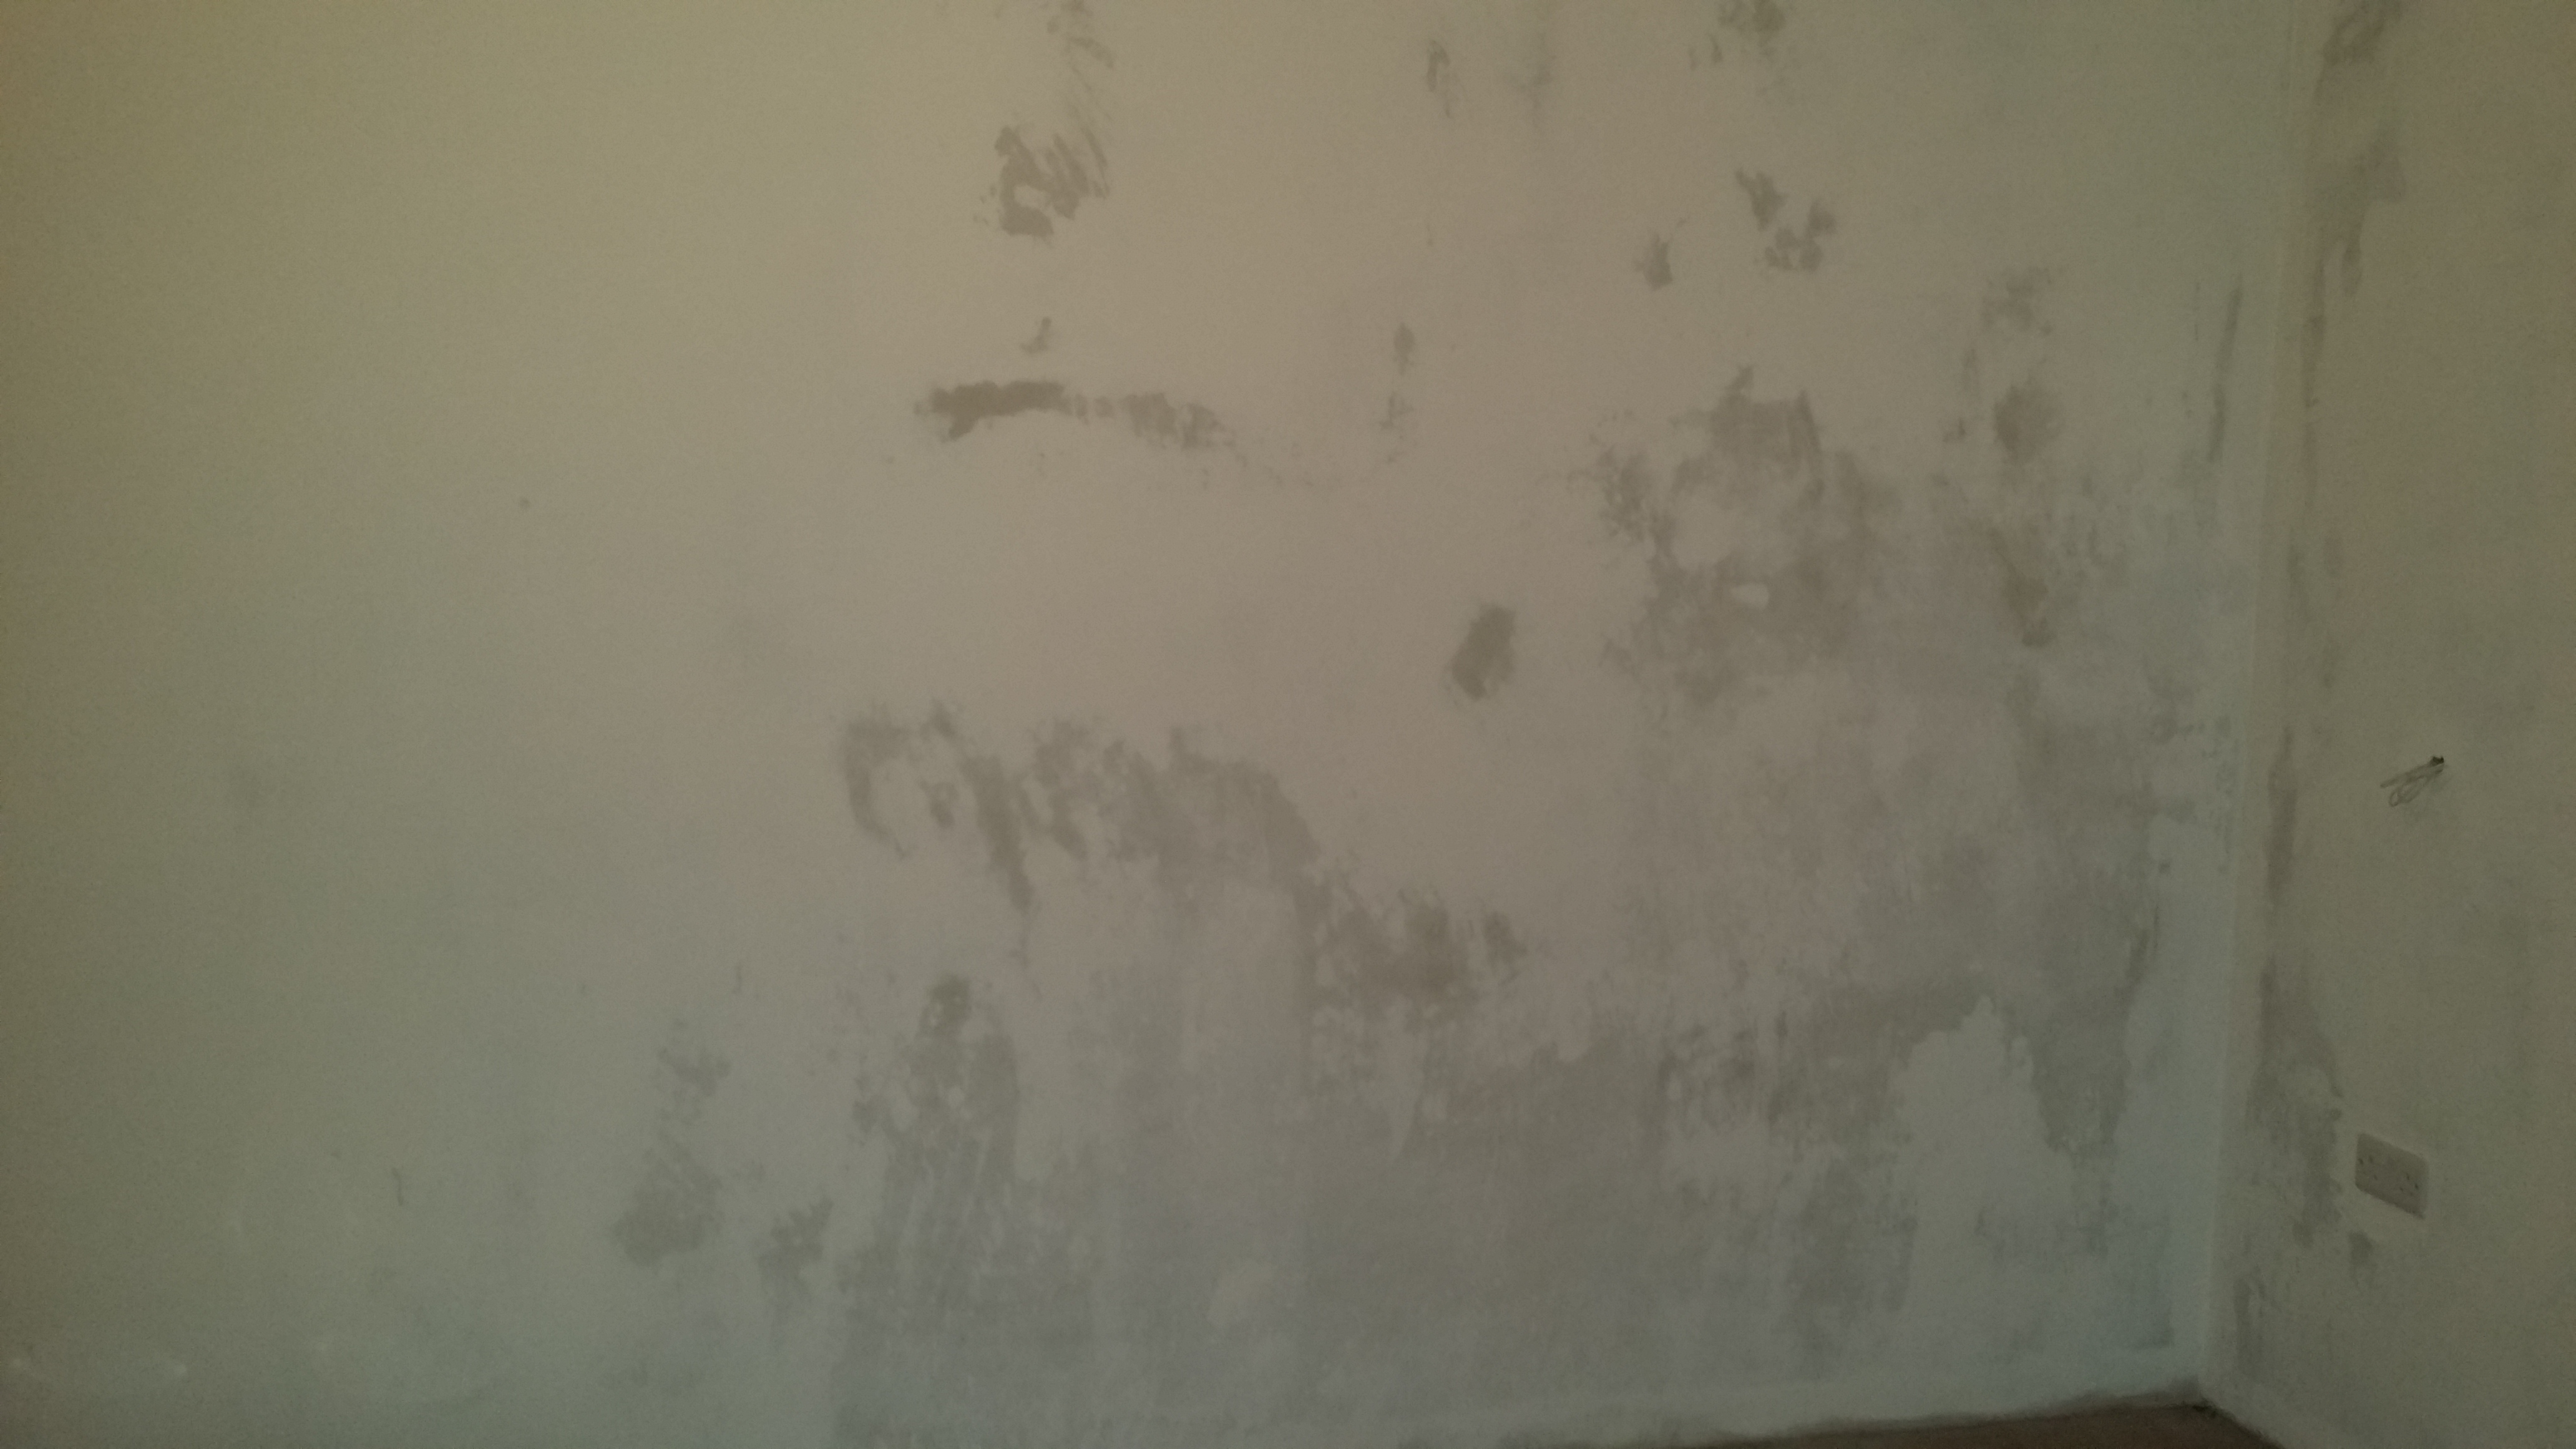 Paint is patchy on newly plastered walls